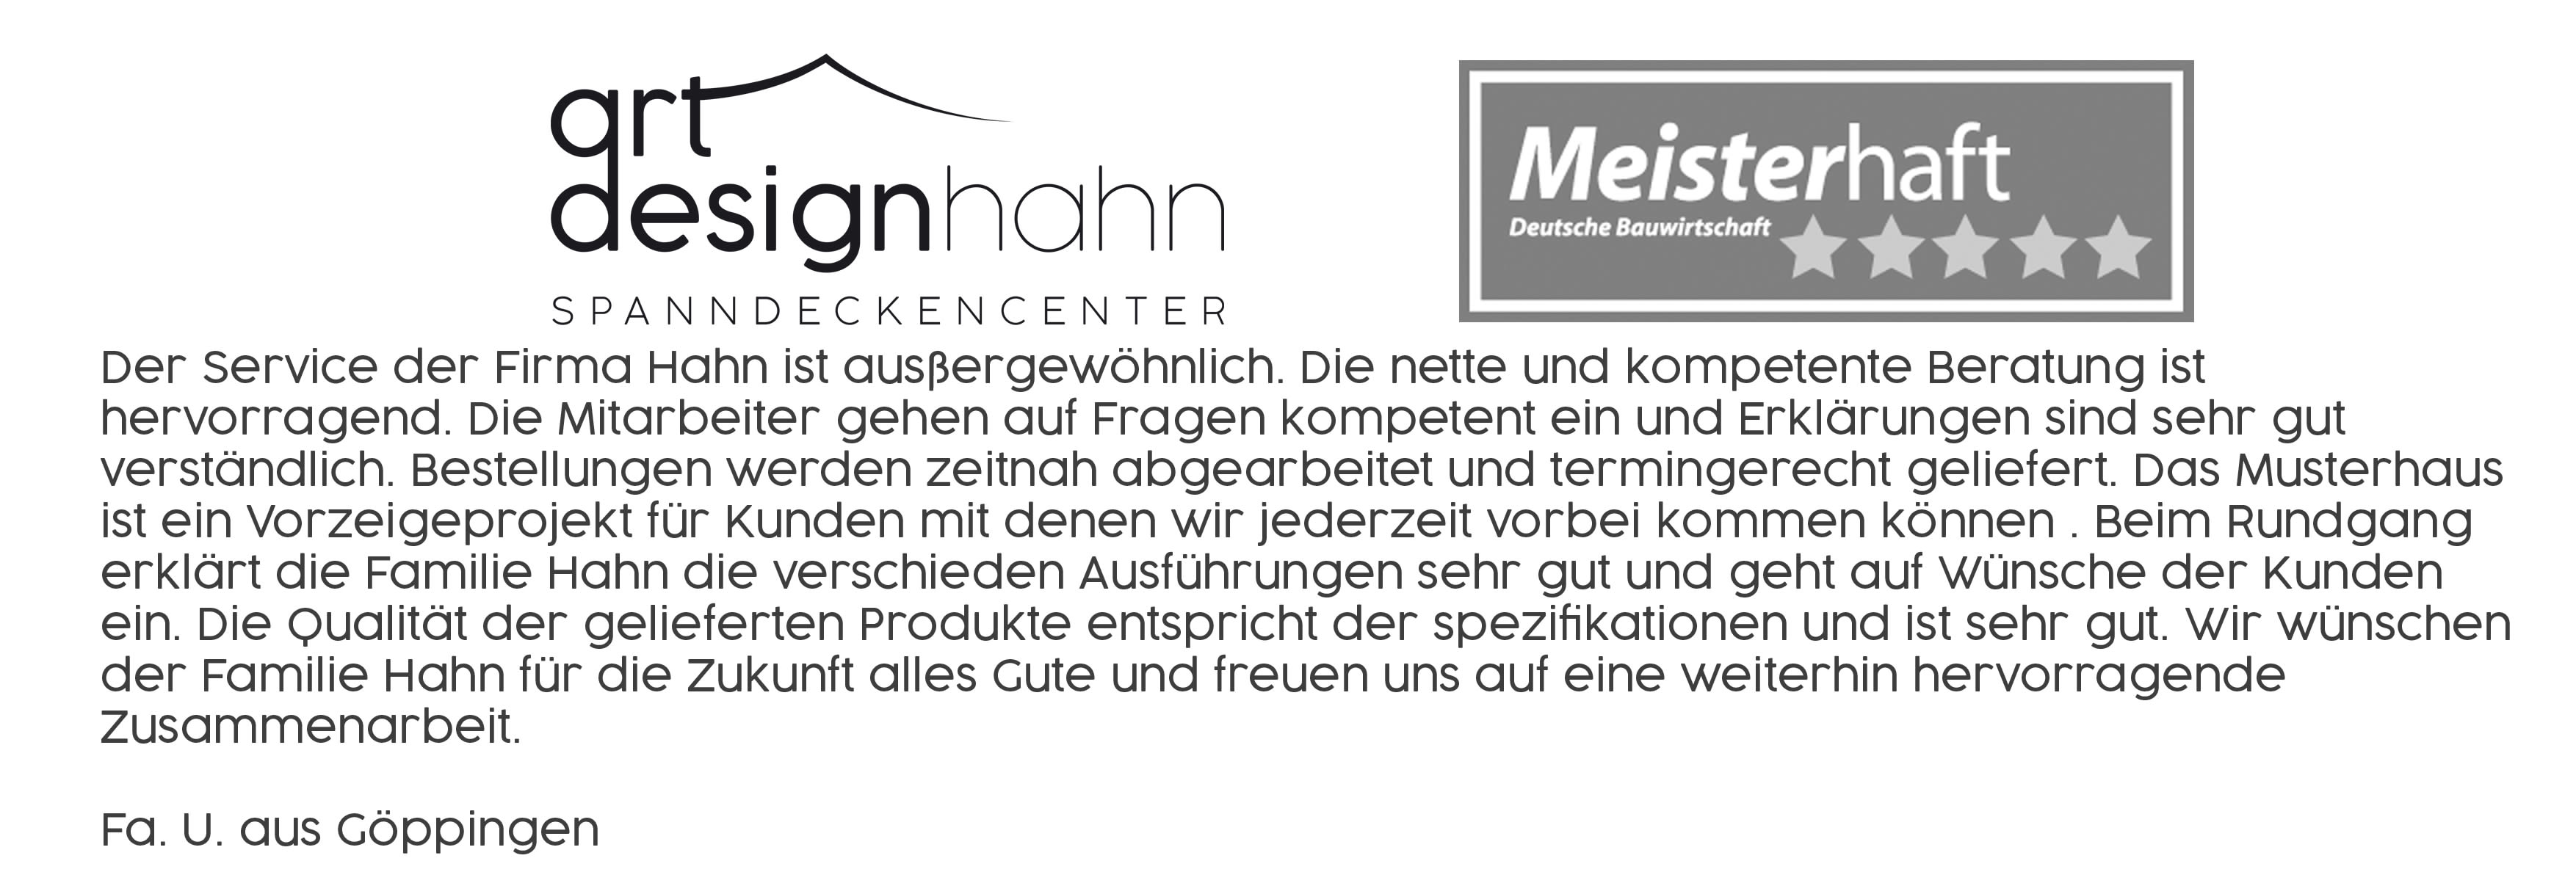 Art Design Hahn Meisterhafte Rezension 51